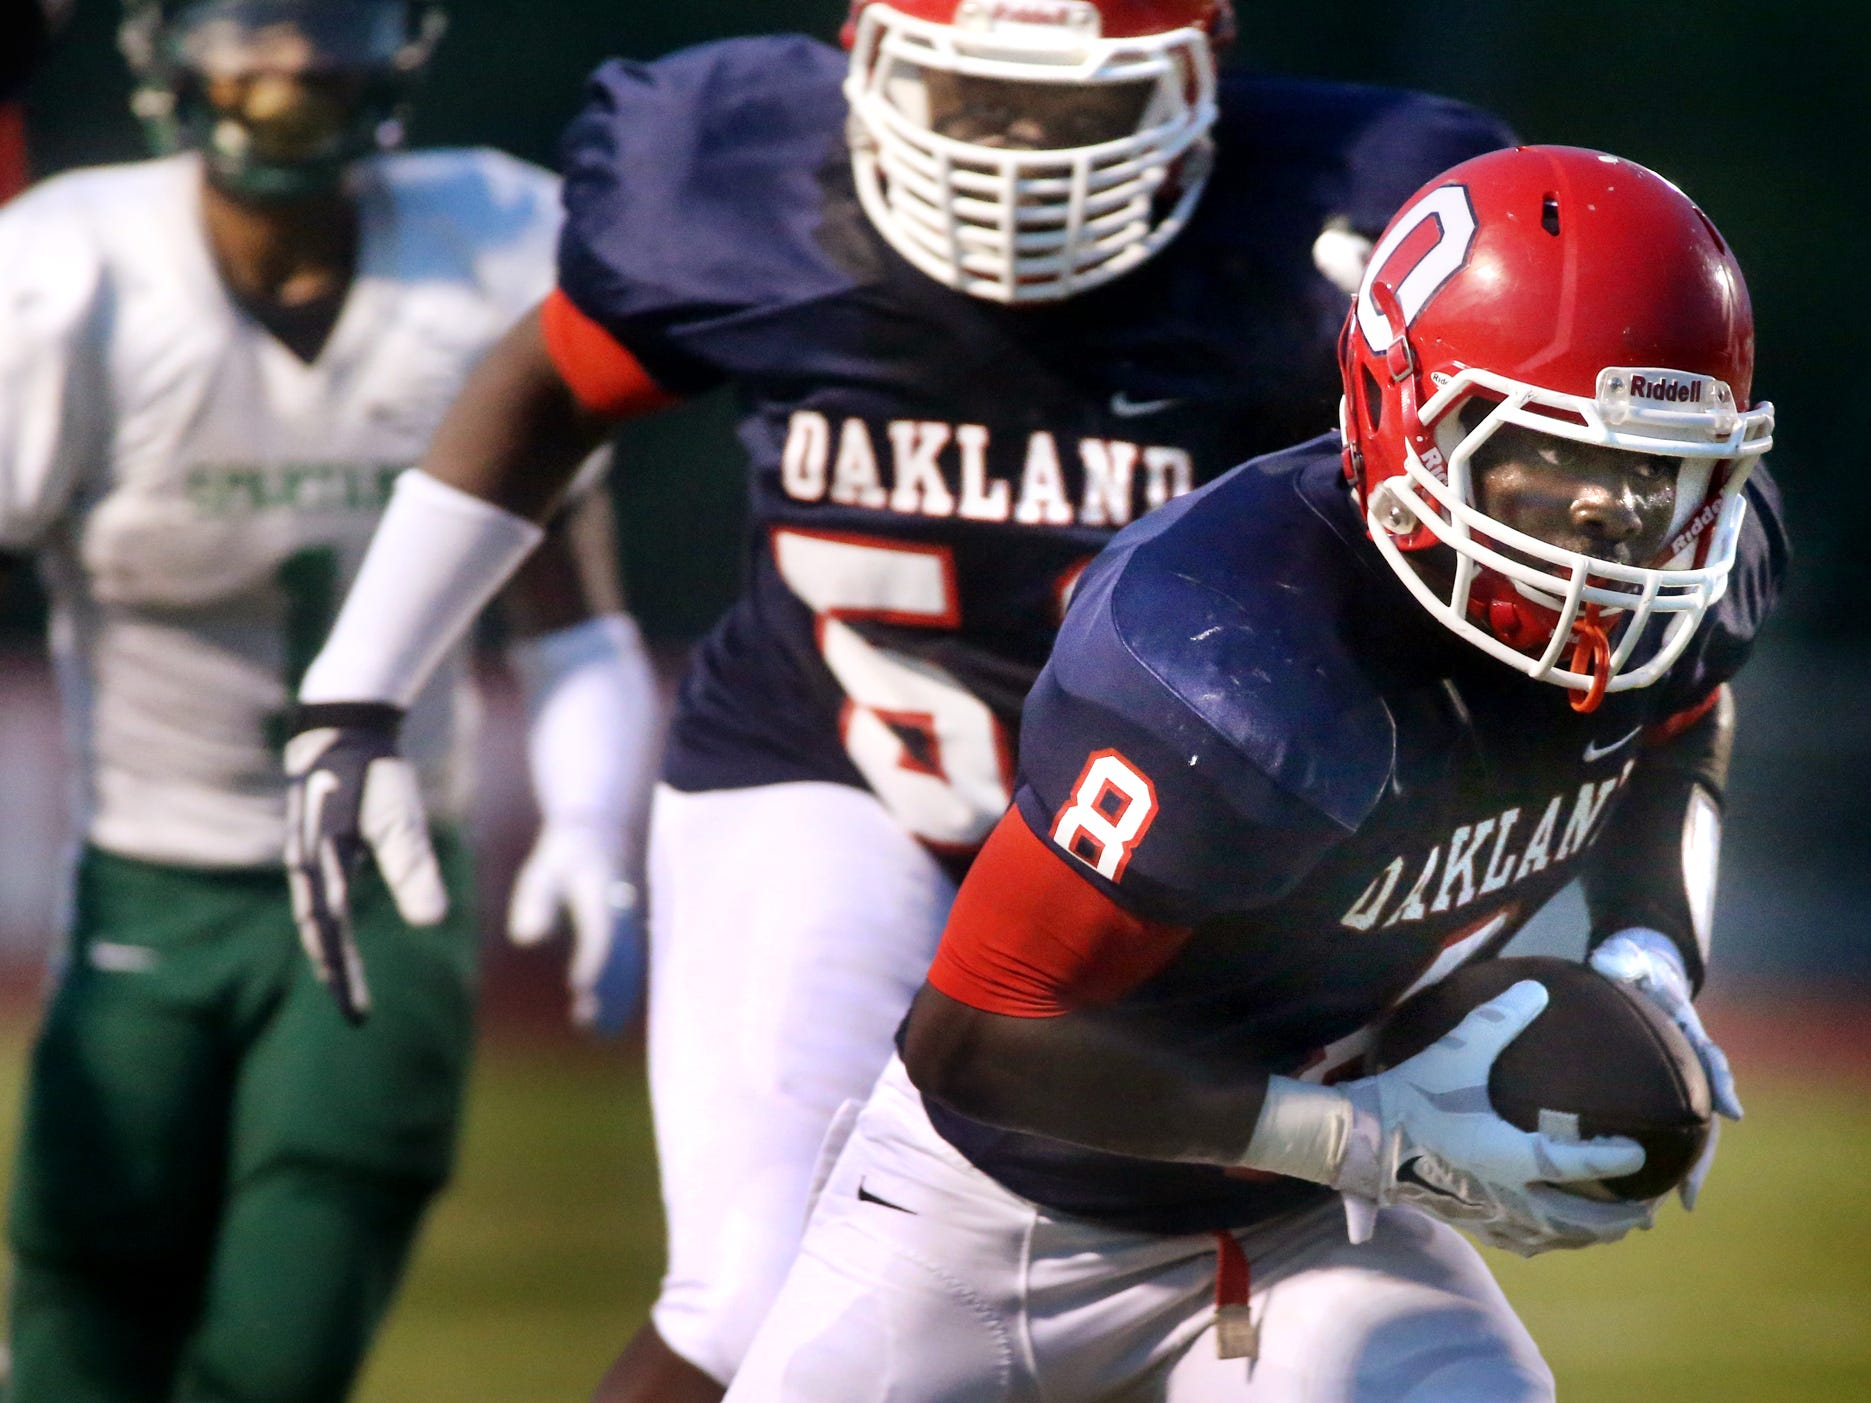 Oakland's George Gbesee picks up a fumble and runs it in for a touchdown in the first half of the game against White Station at Oakland, on Friday, August 2, 2014.